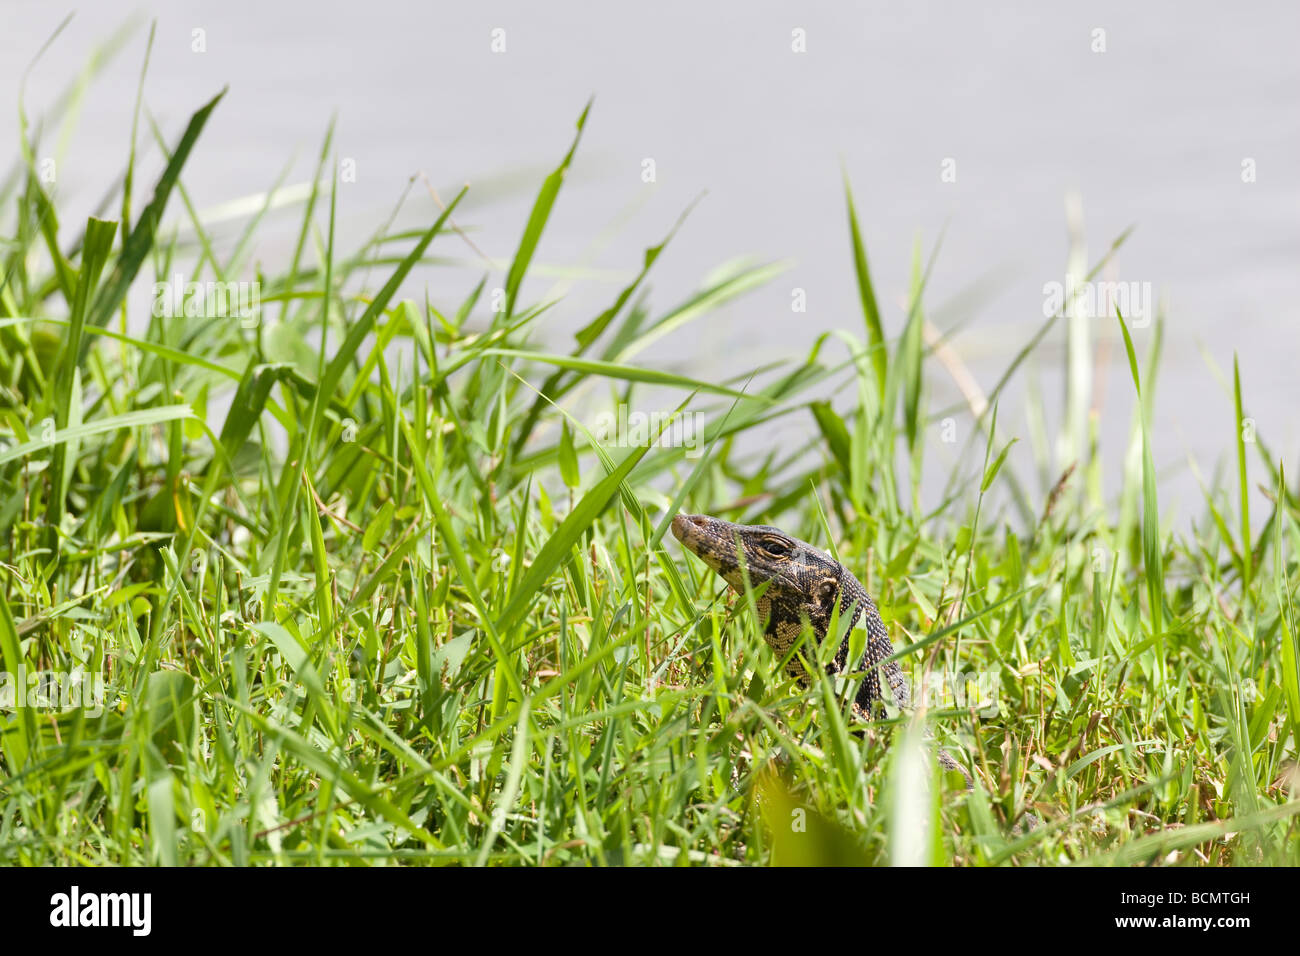 A monitor lizard hiding in tall grass cautiously raises its head and peers out. - Stock Image